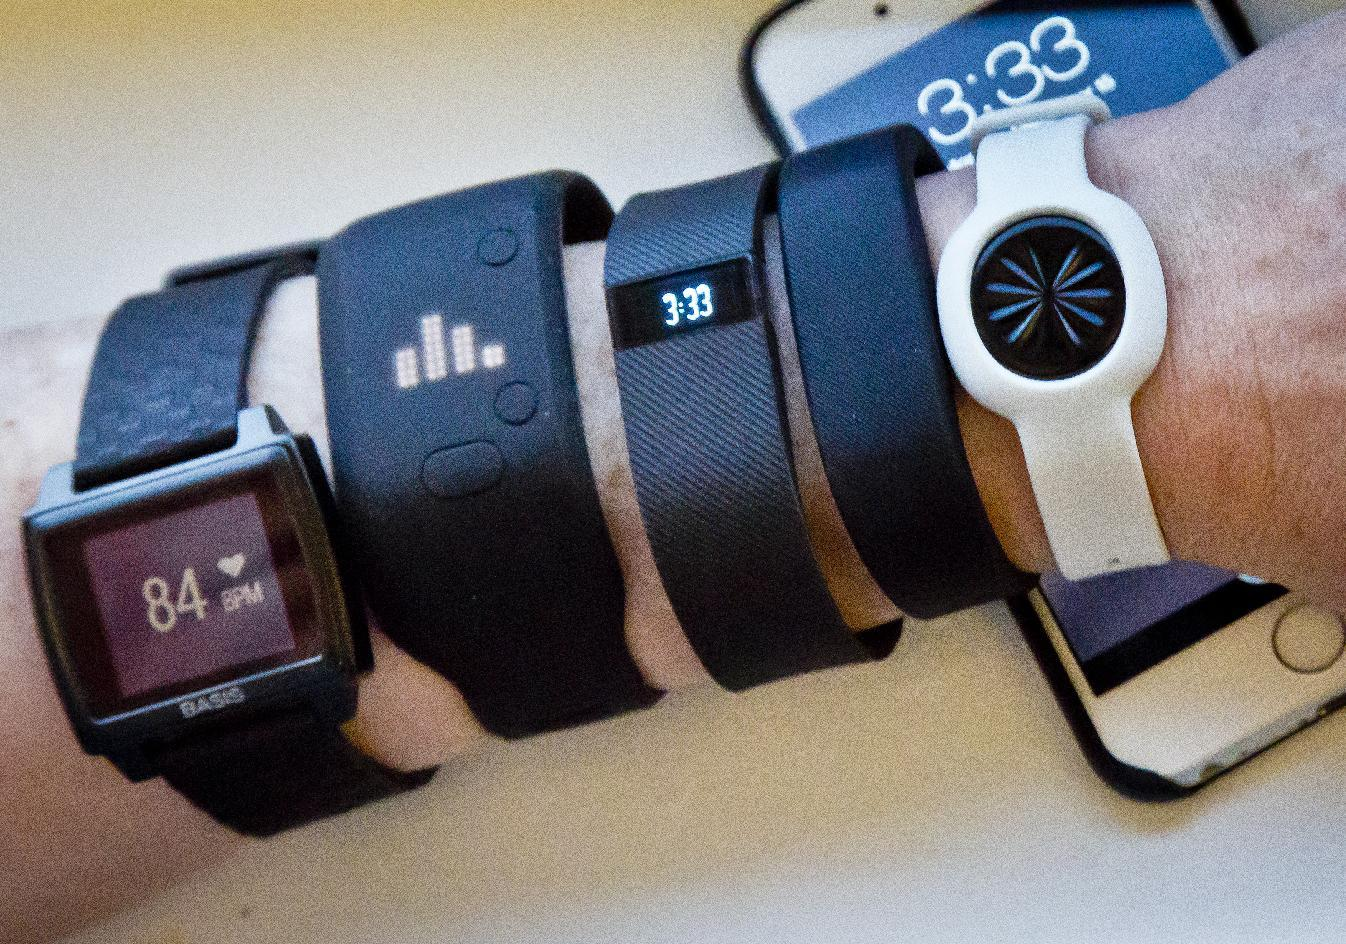 Fitness trackers are hot, but do they really help?